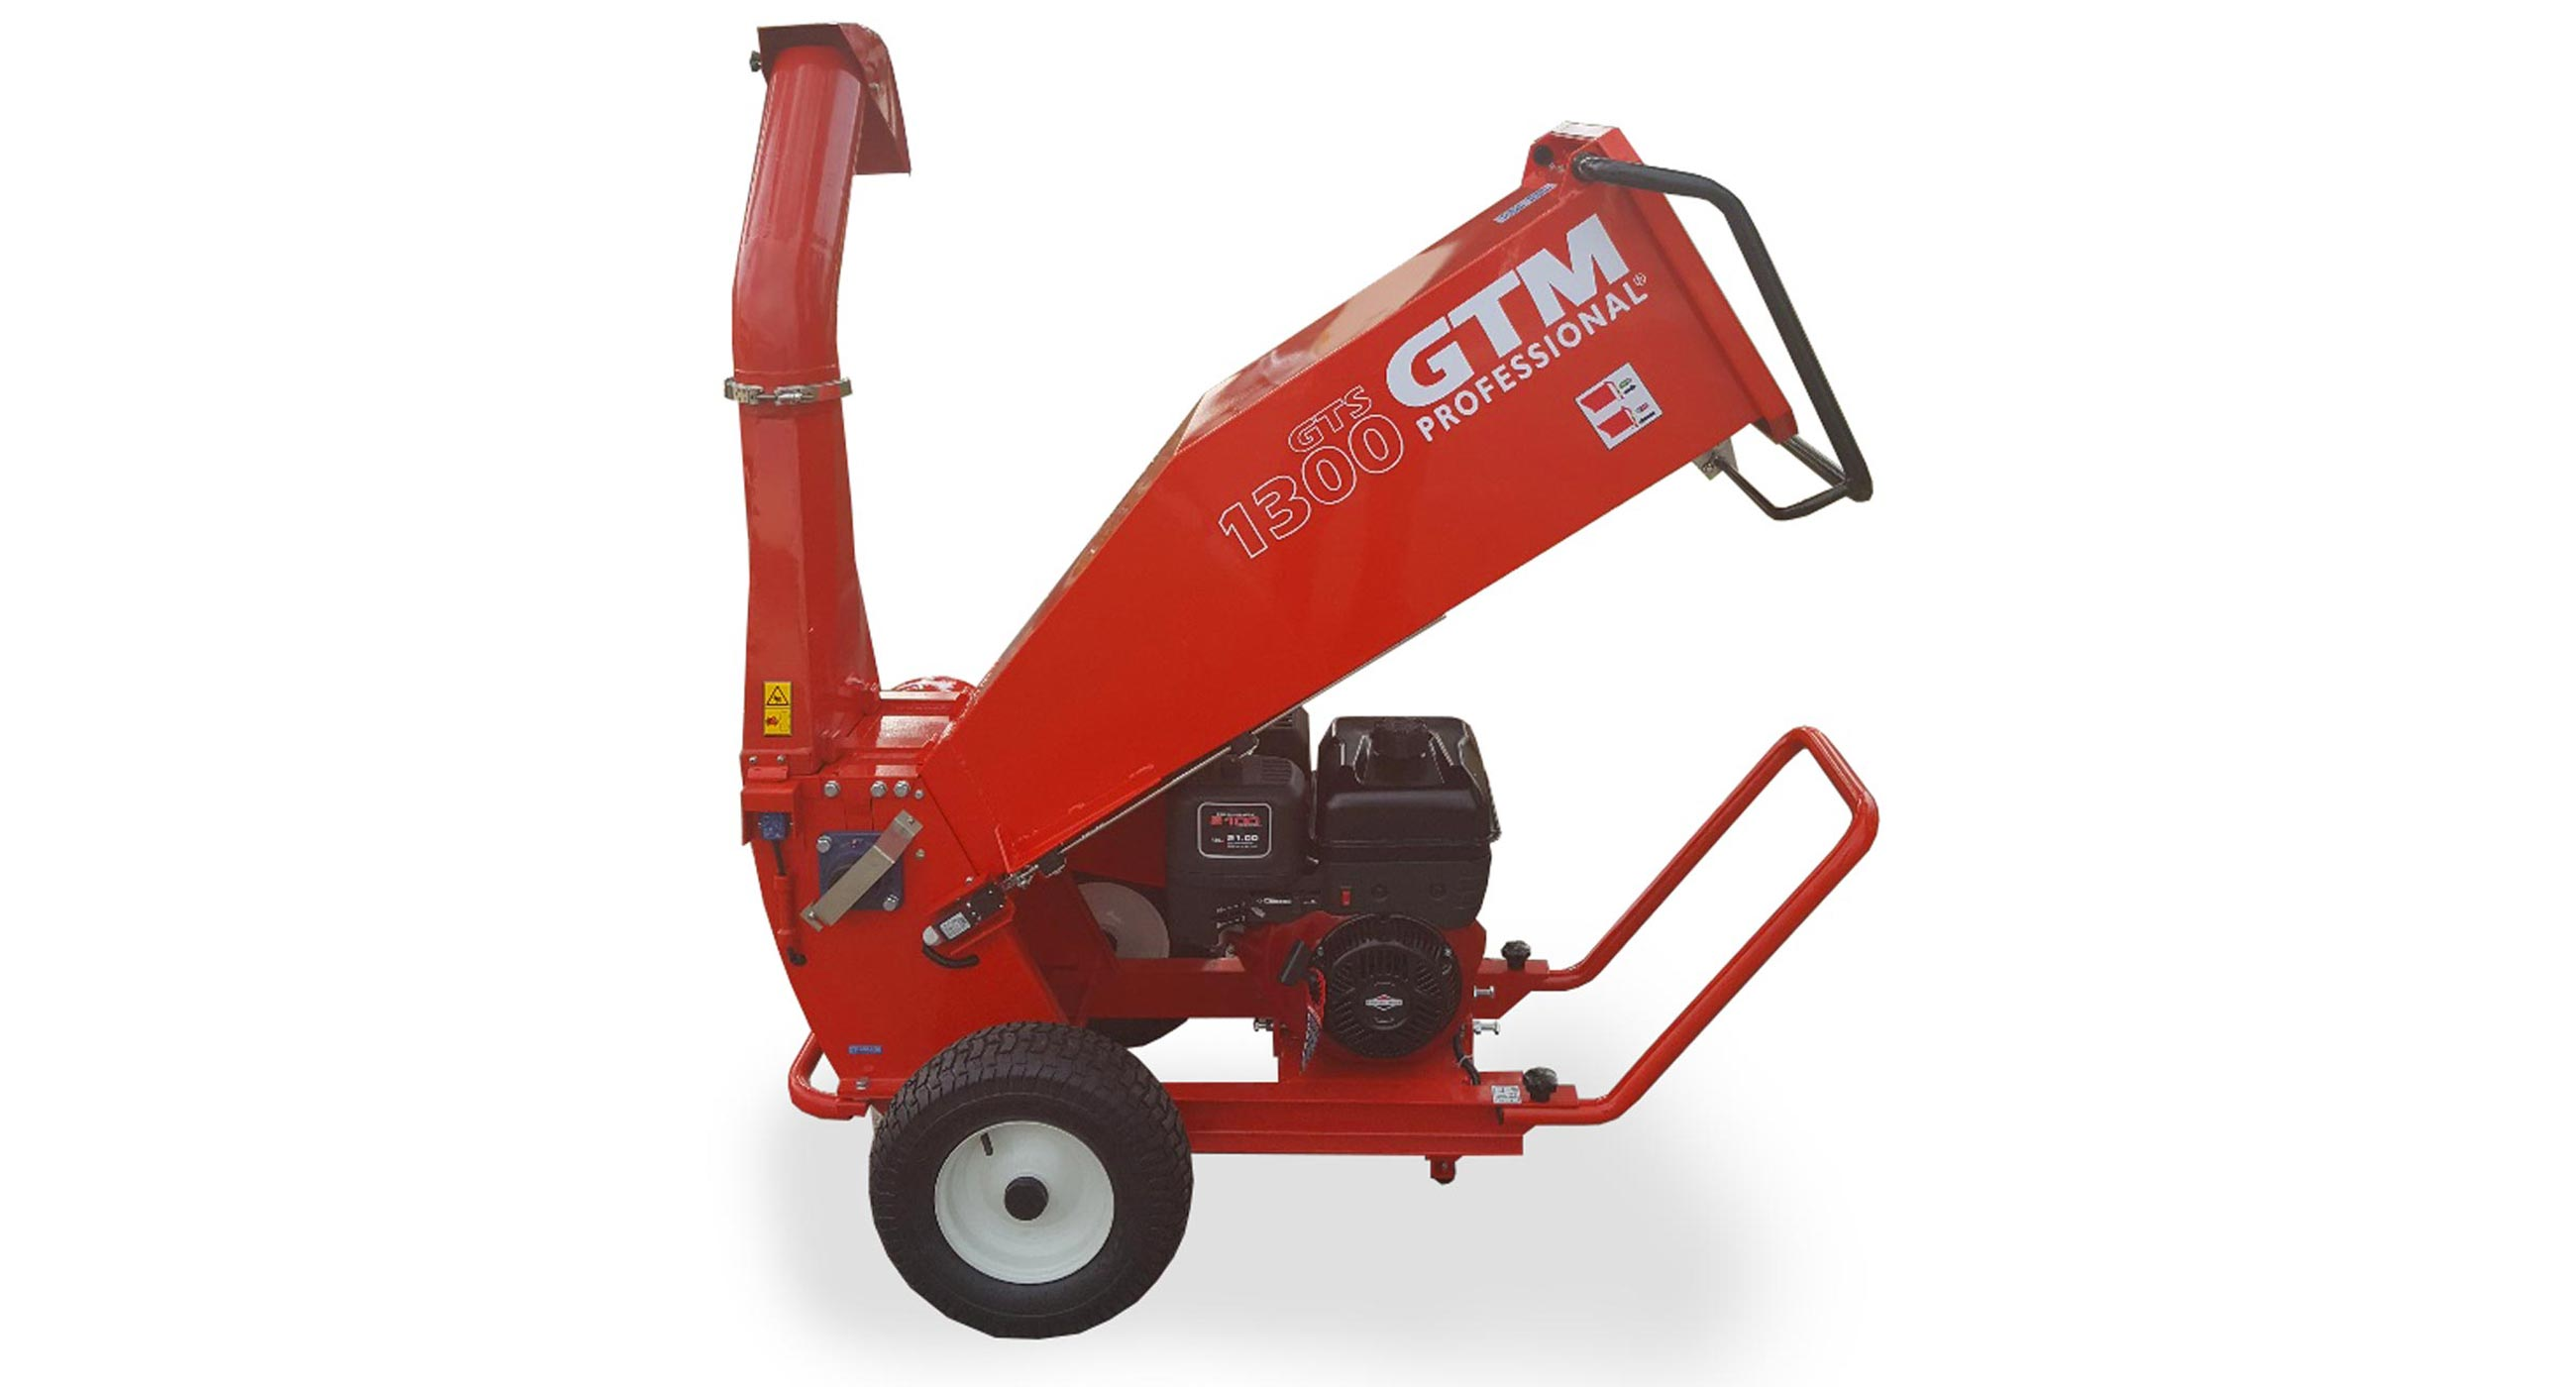 GTM Professional GTS 1300 Advanced Mulcher Chipper